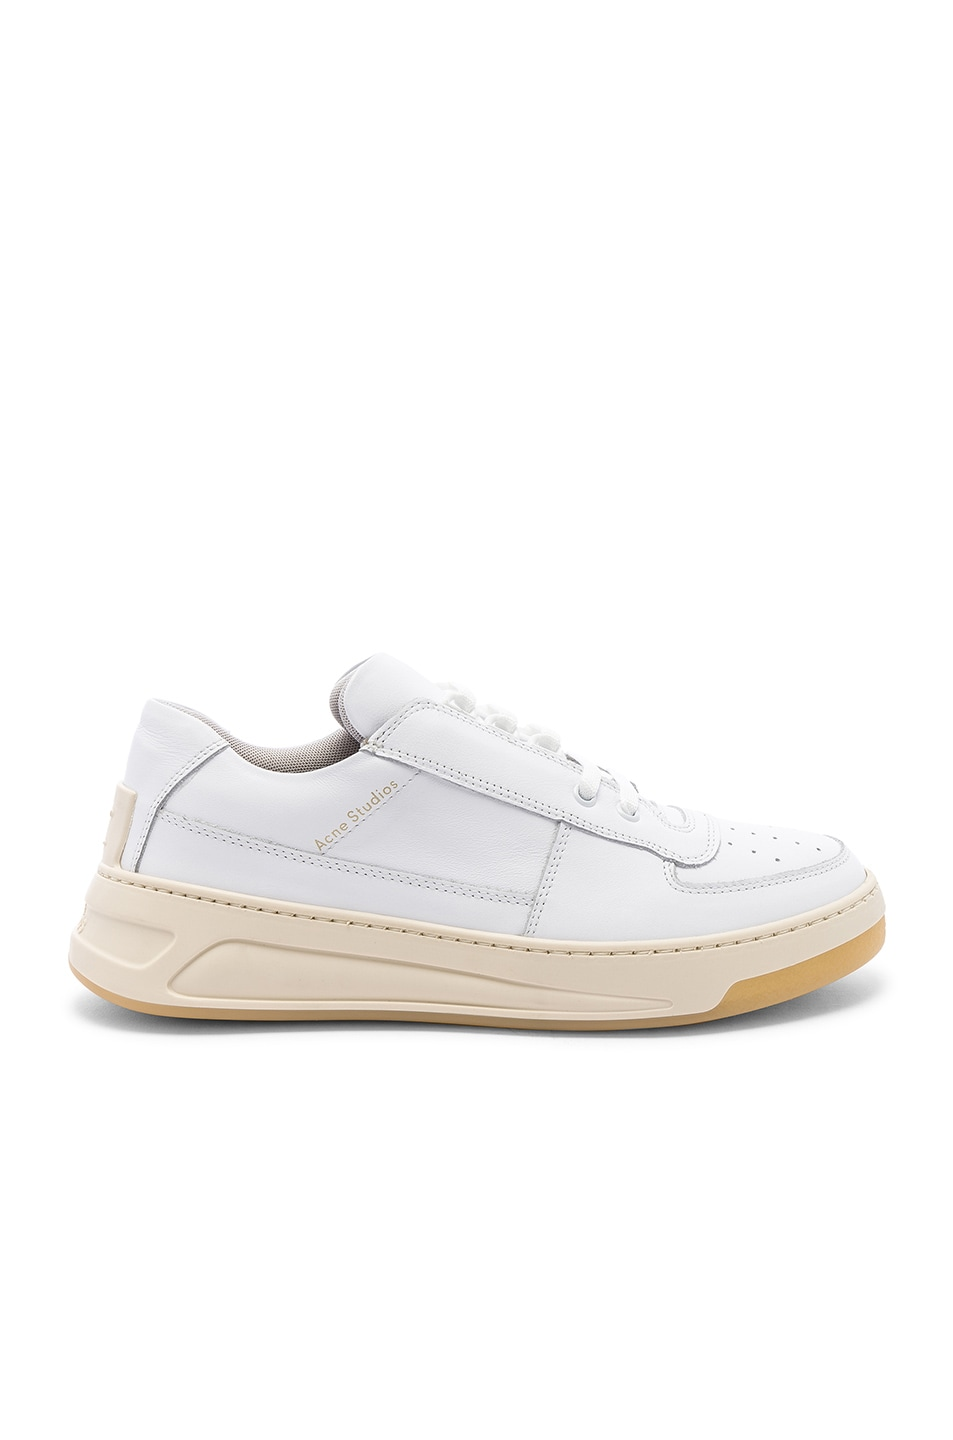 Image 2 of Acne Studios Perey Lace Up Sneakers in White & White